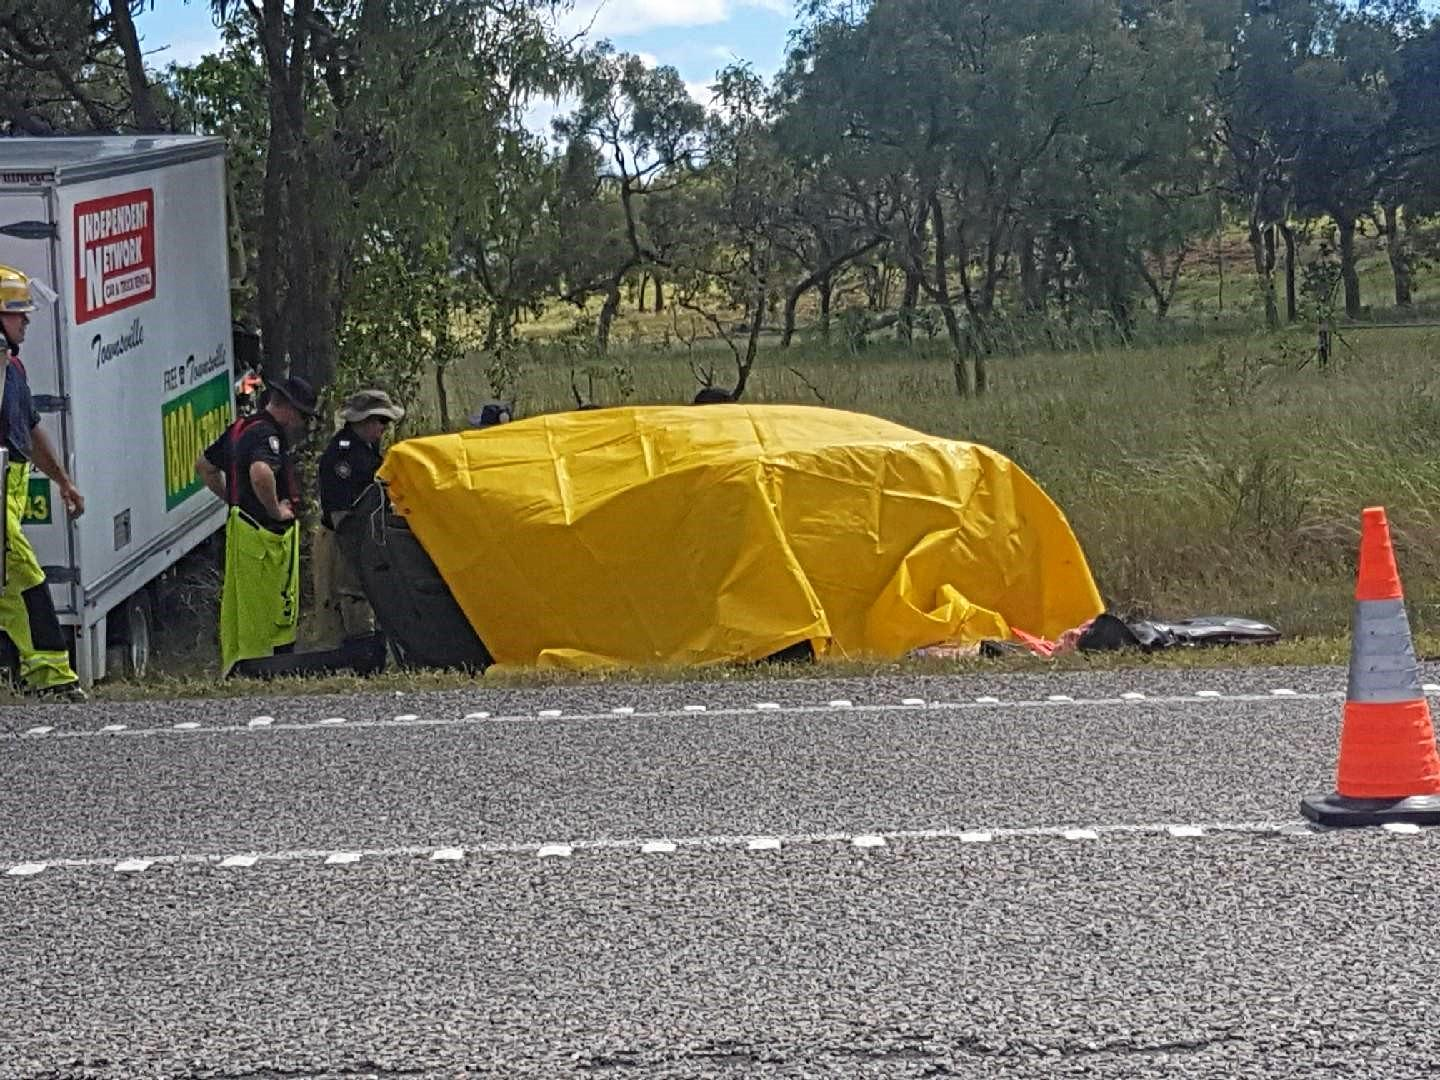 Scene of the car and truck crash on the Bruce Highway at Gumlu near Nobile Rd about 8.30am on Monday 19 March